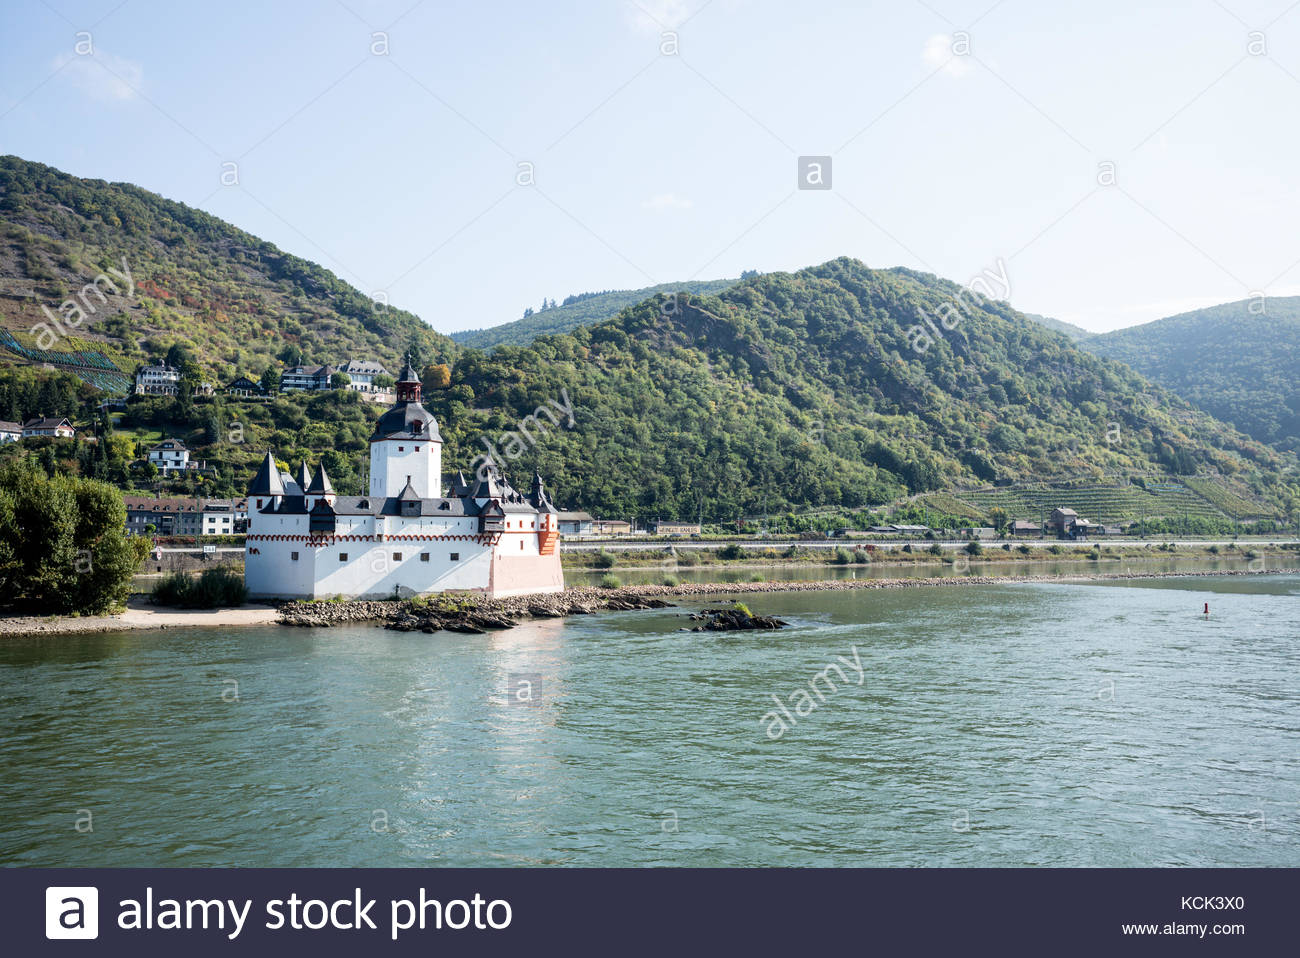 Rietburg Castle Ruins The Pfalz and Rhine Terrace, Rhineland Pfalz Stock Photos & Rhineland Pfalz Stock Images - Alamy